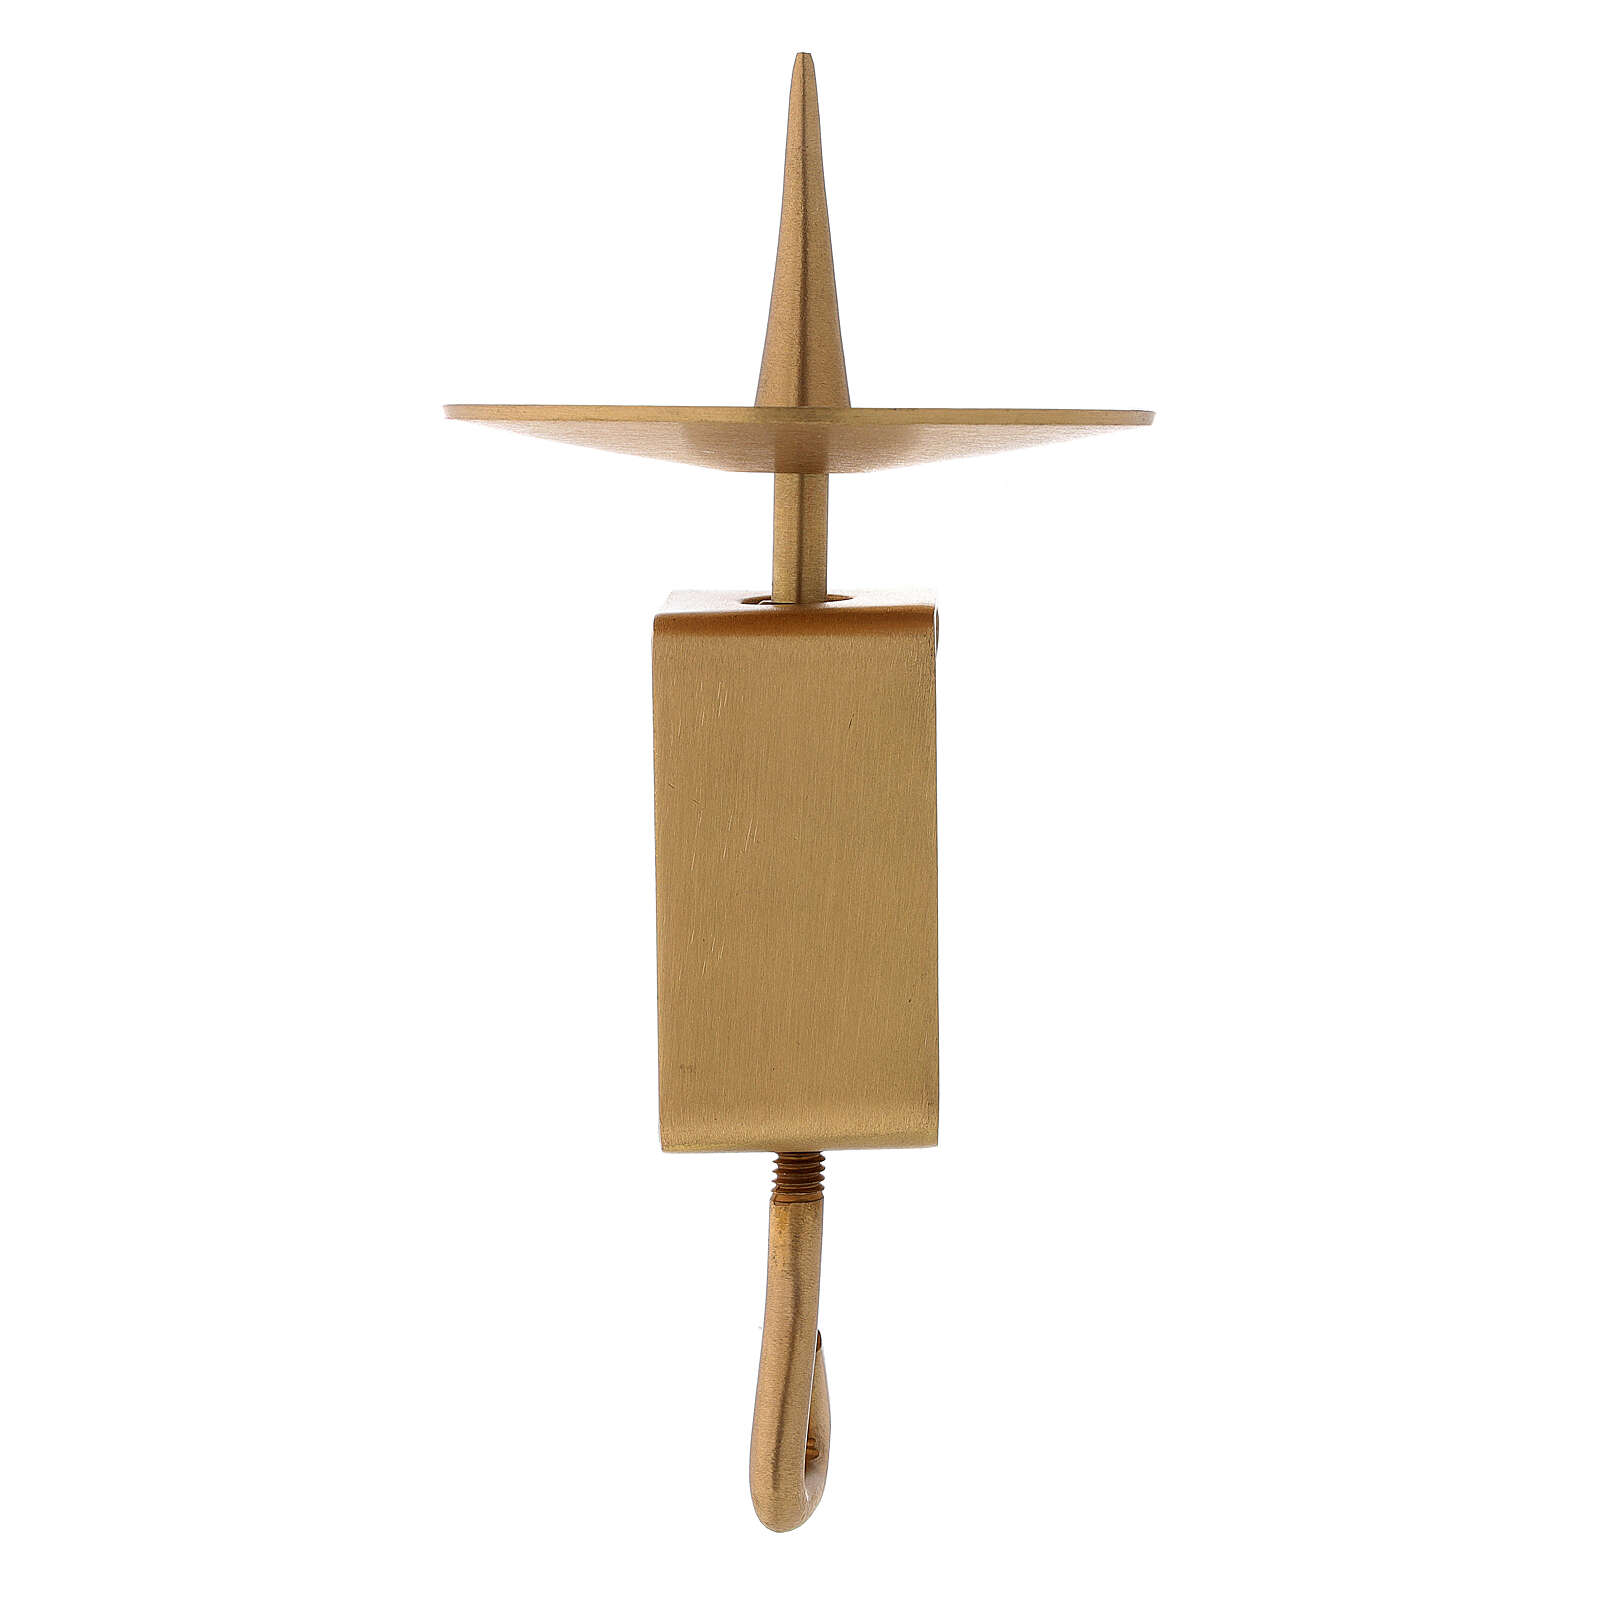 Adjustable candlestick gold plated brass satin finish 4 in 4